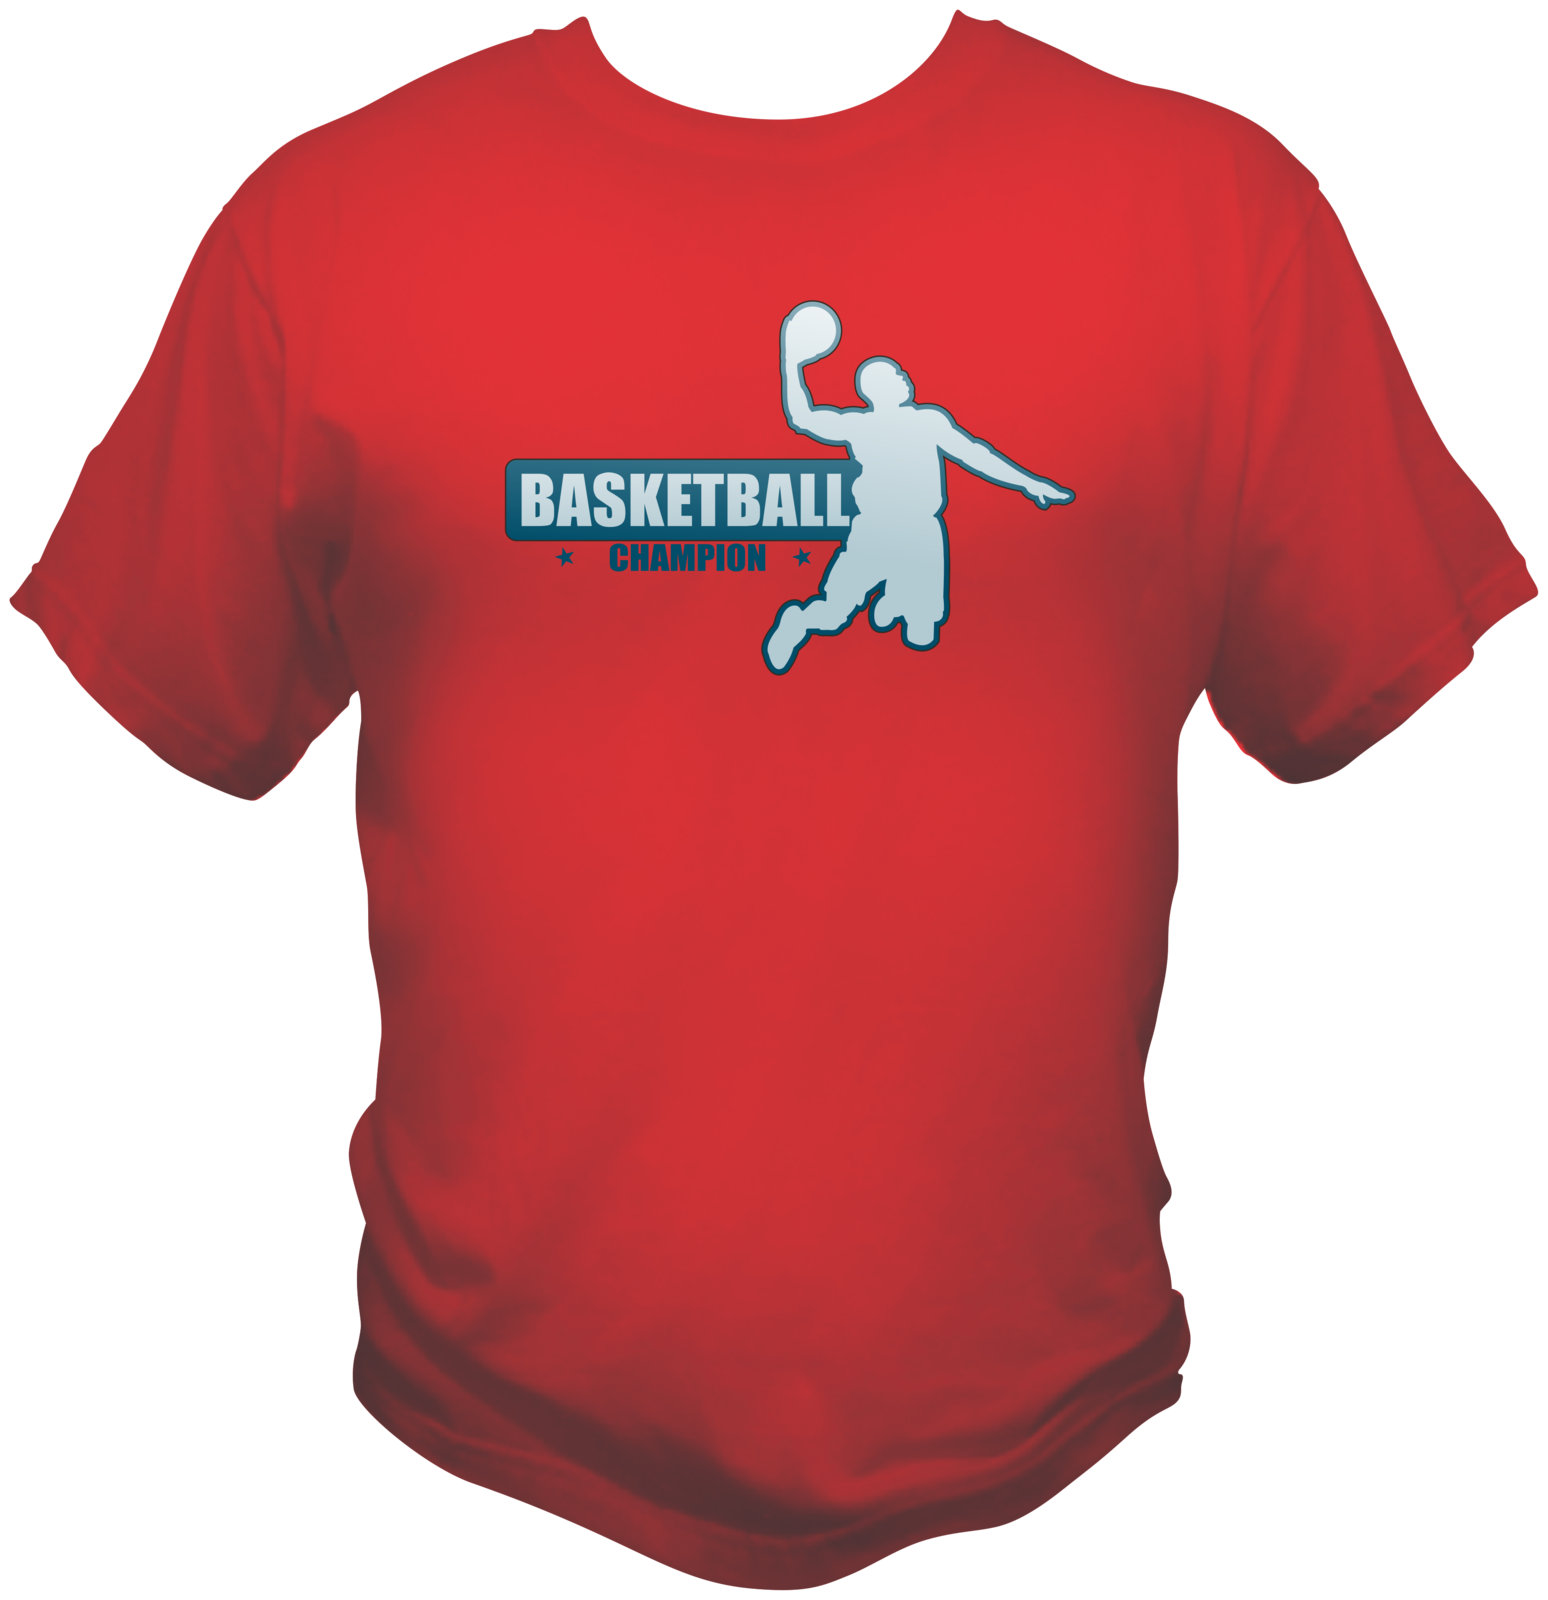 Basketball champion red